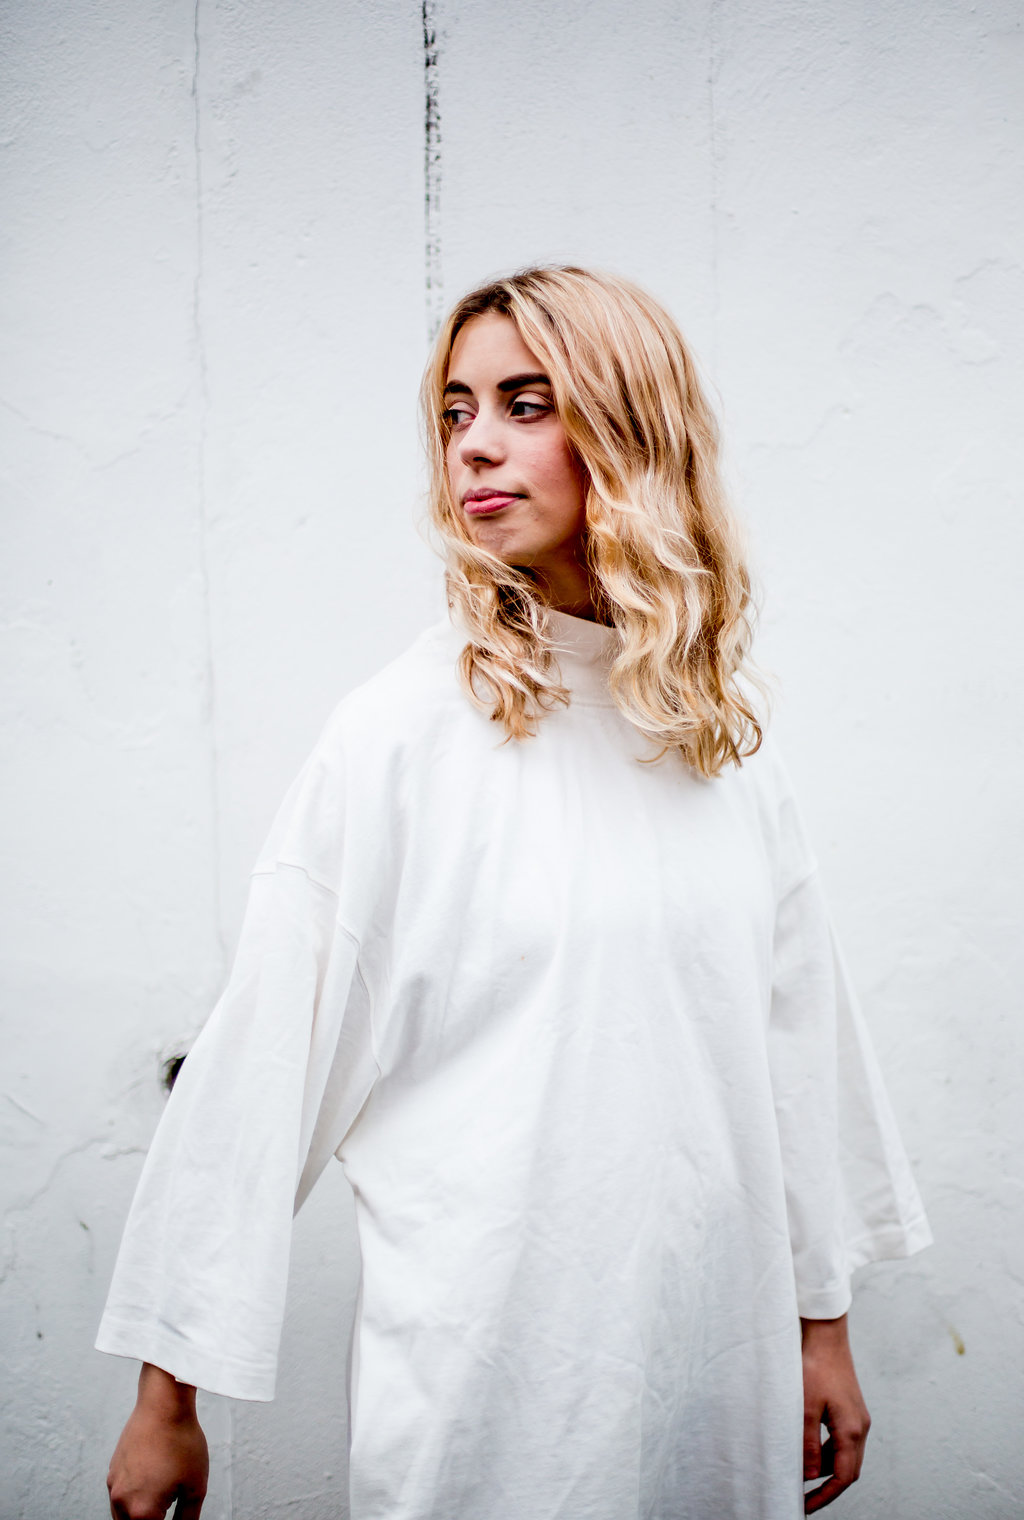 White mockneck casual dress // A Week Of Vibrant & Global Outfits With Francesca Willow From Ethical Unicorn on The Good Trade